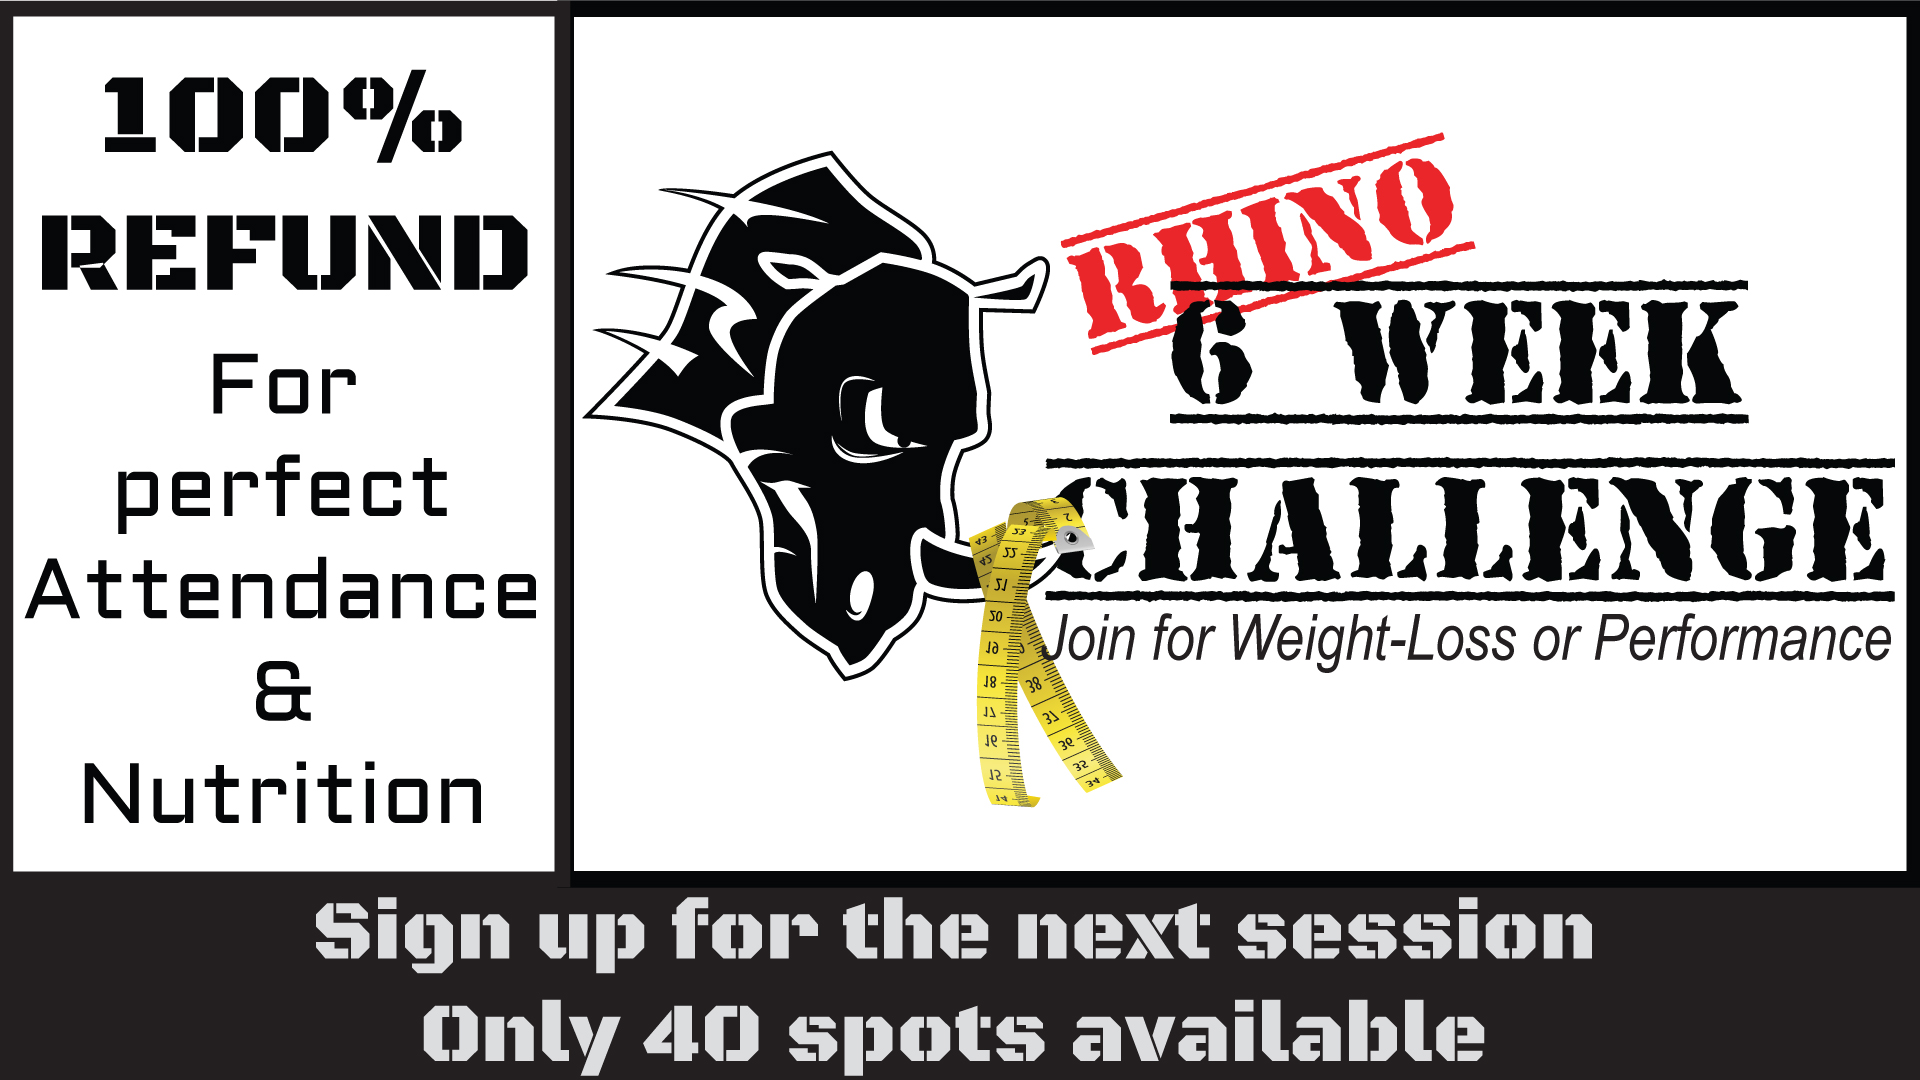 Rhino 6 Week Challenge July 10th, 2018 at 6pm